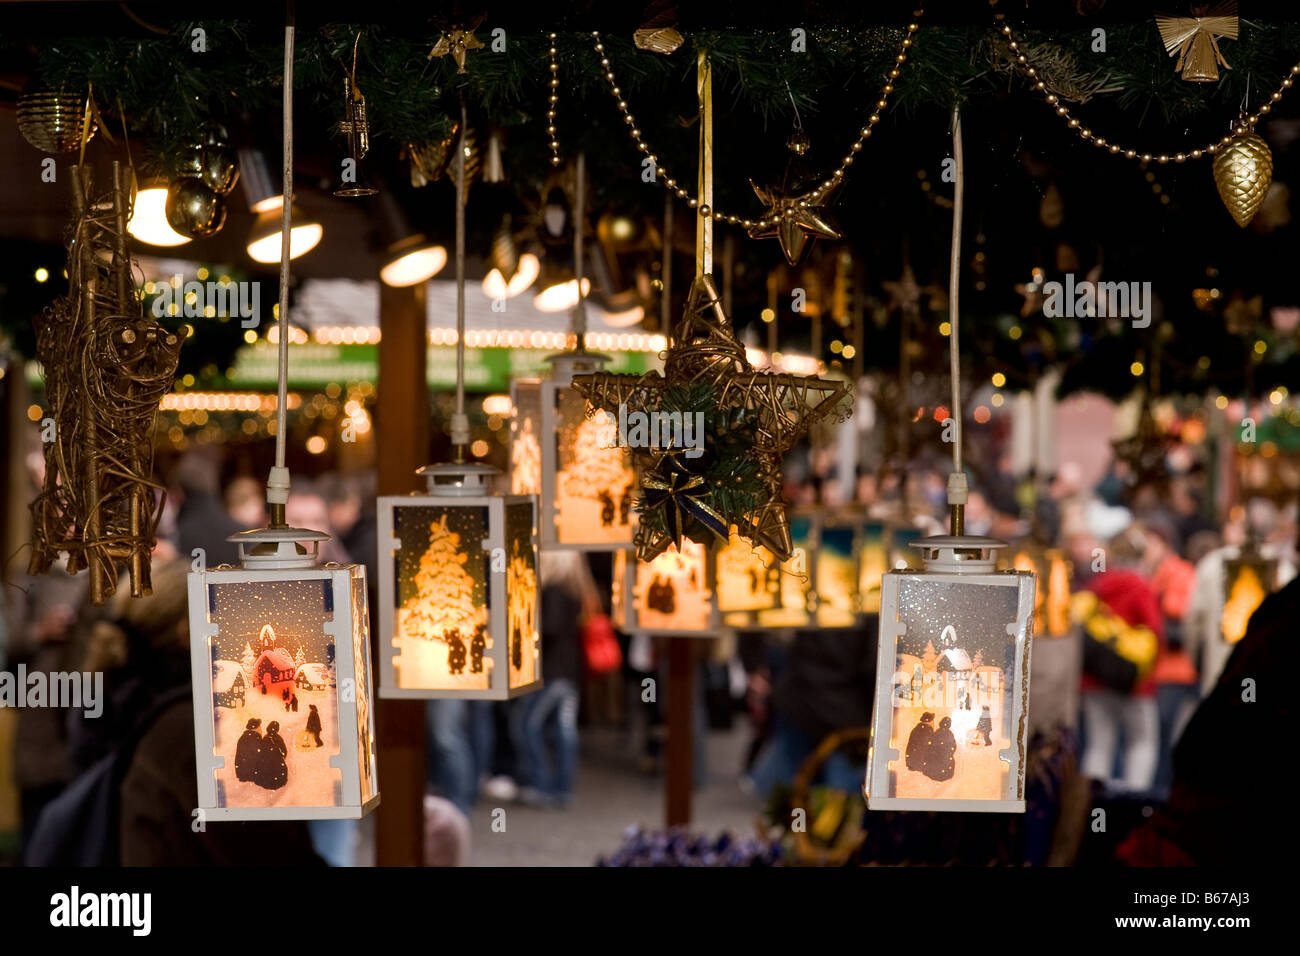 Scenes from a german Christmas market - Stock Image